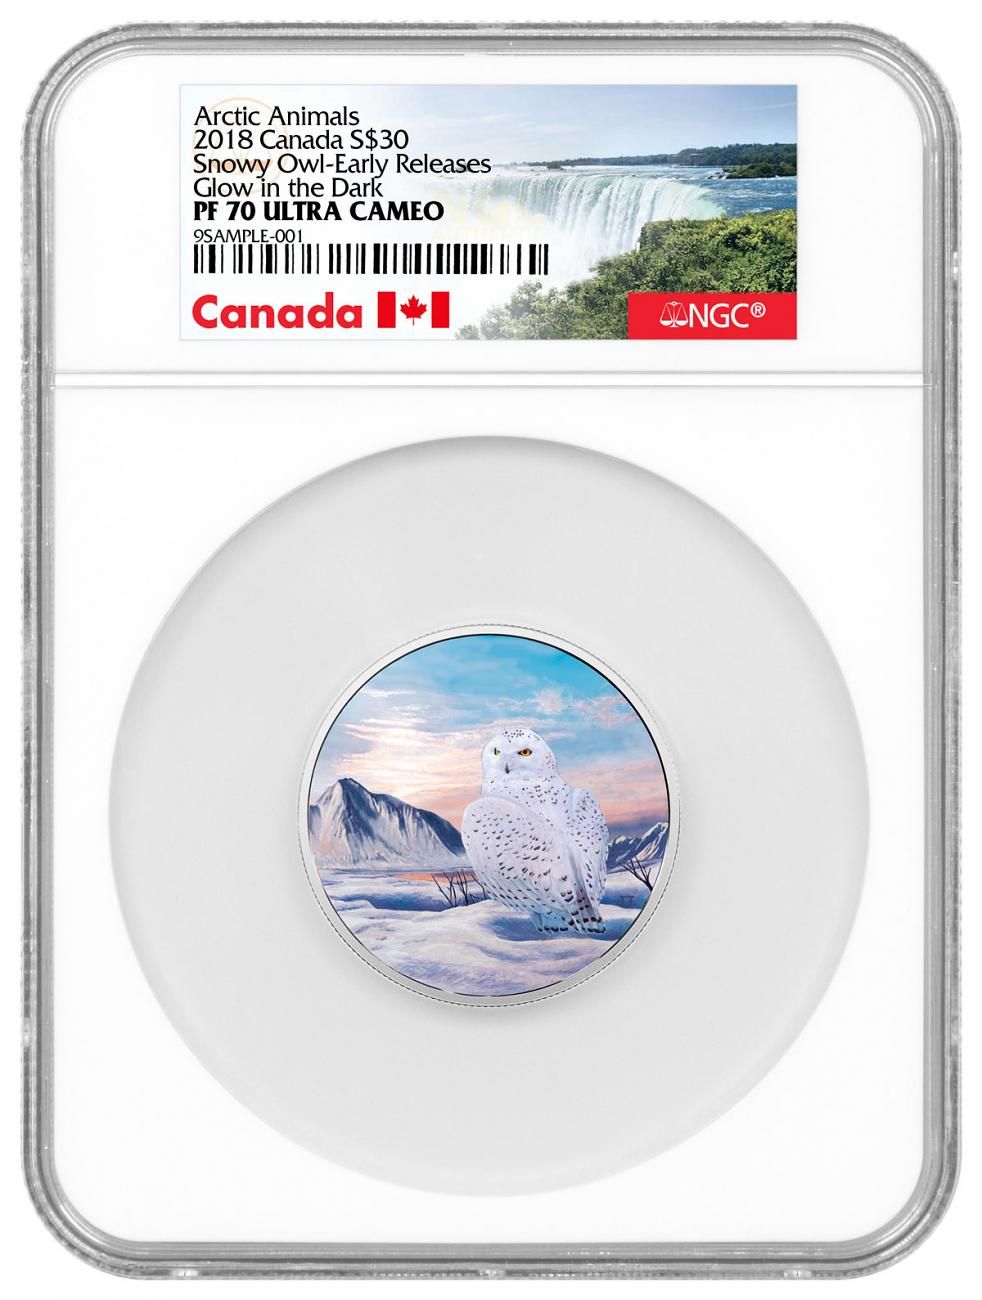 2018 Canada Arctic Animals and Northern Lights - Snowy Owl 2 oz Silver Glow in the Dark Colorized Proof 30 Coin NGC PF70 UC ER Exclusive Canada Label